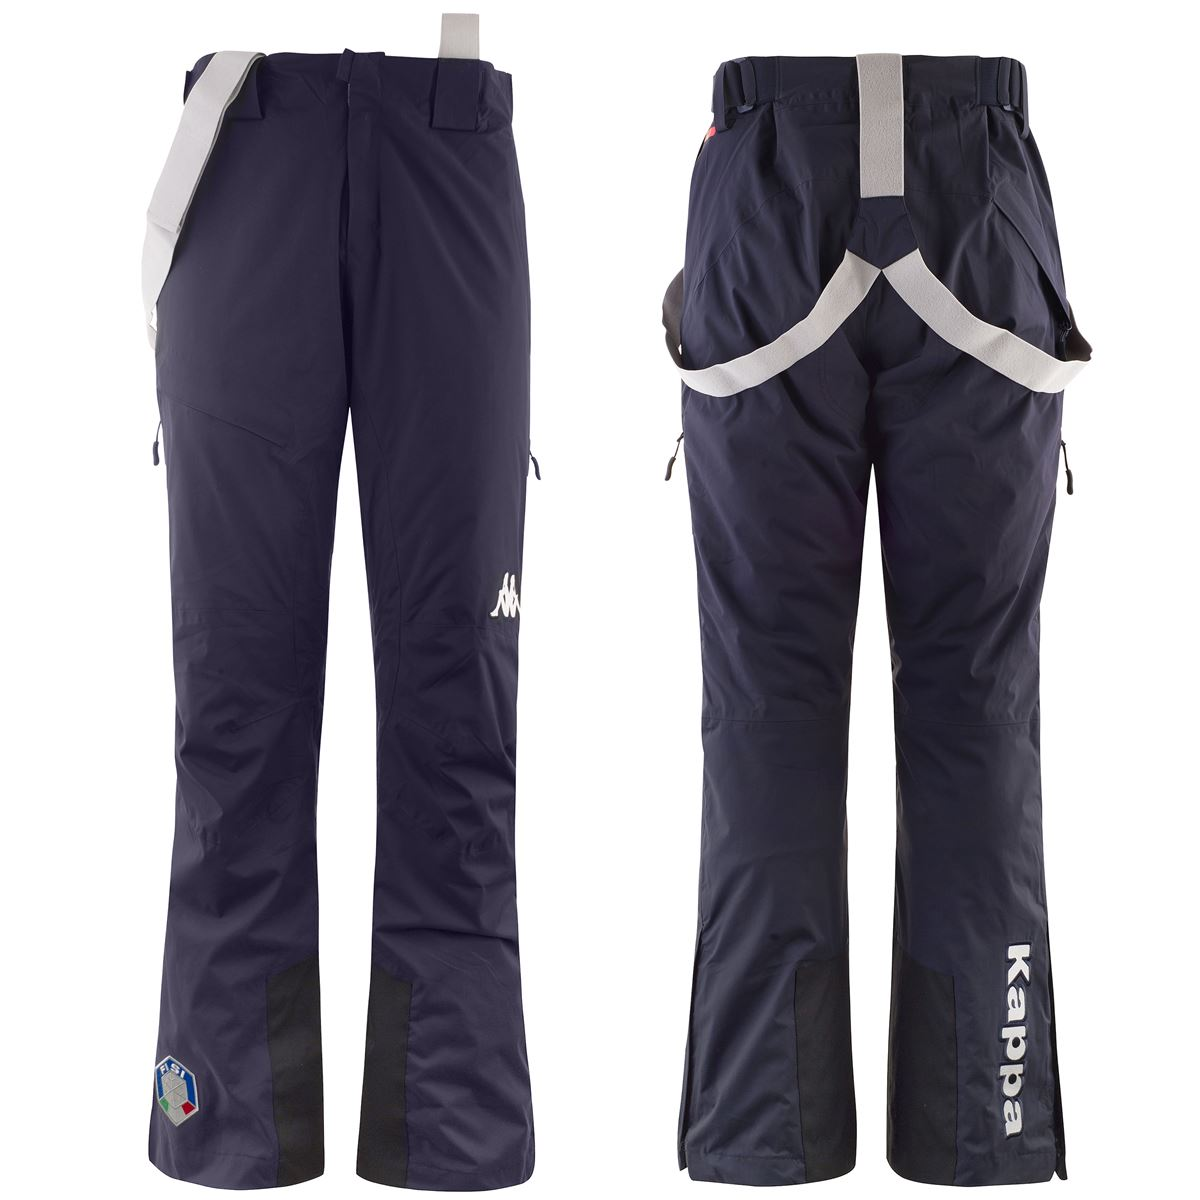 Kappa Pants 6CENTO 622A FISI Man Winter sports National Italy Sport Trousers